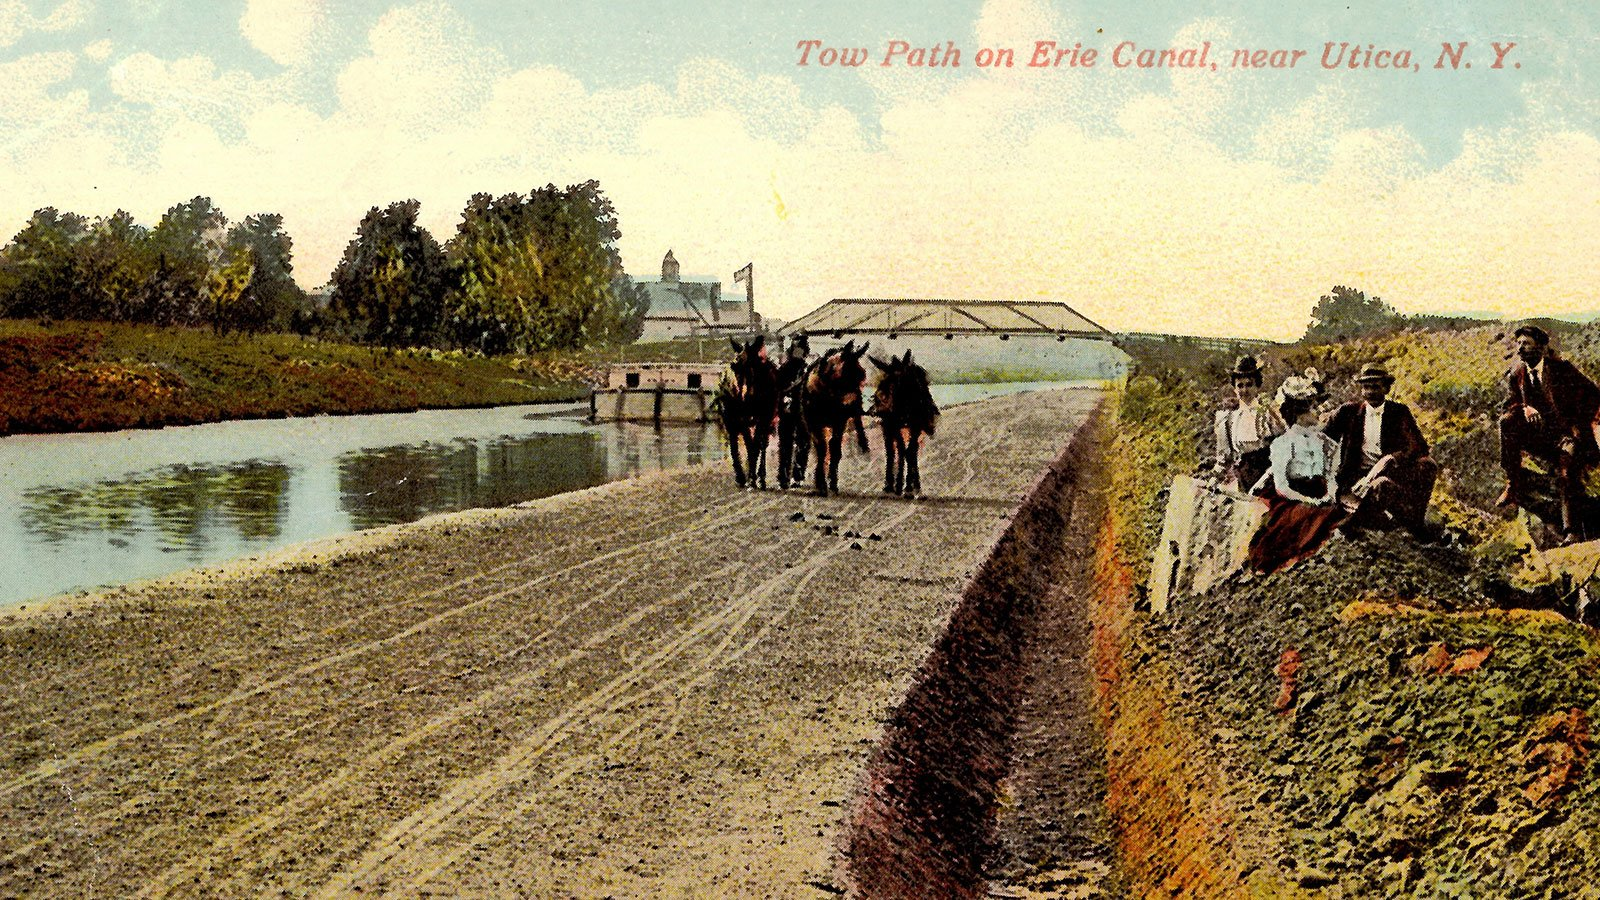 Towpath on Erie Canal, near Utica, N.Y.